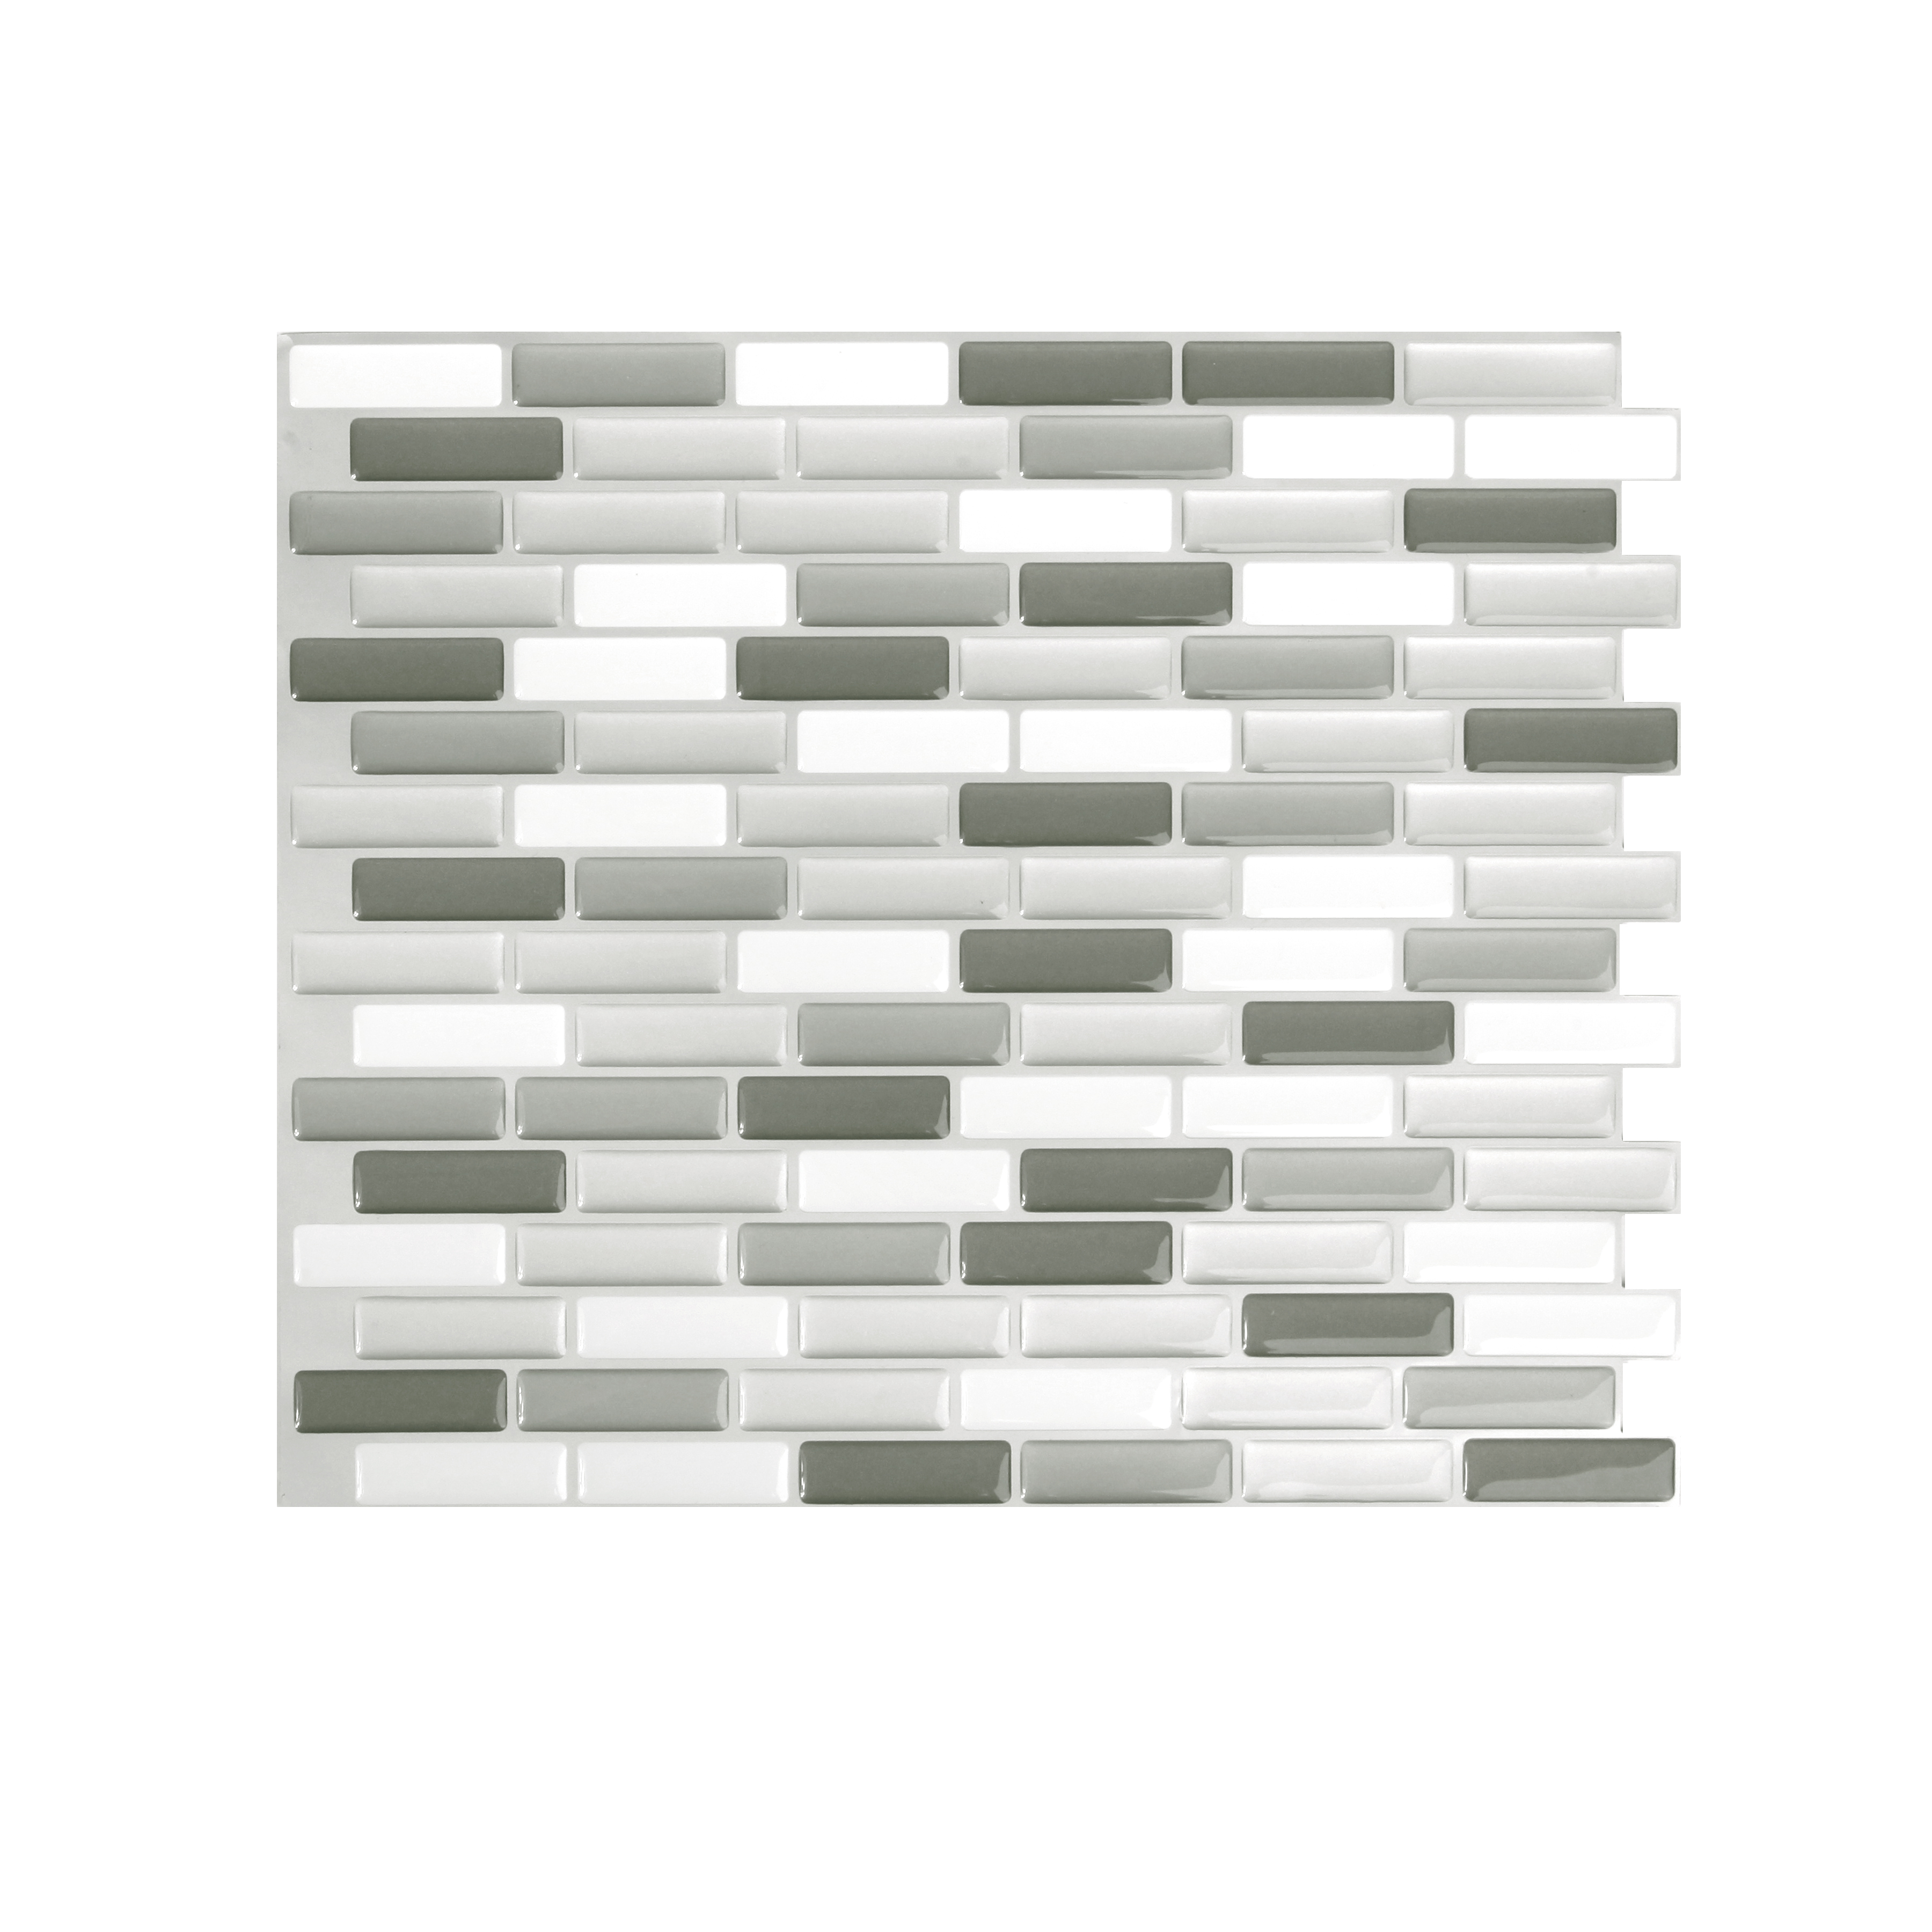 Peel And Impress Adhesive Wall Tile in Glass Grey Oblong (24086)